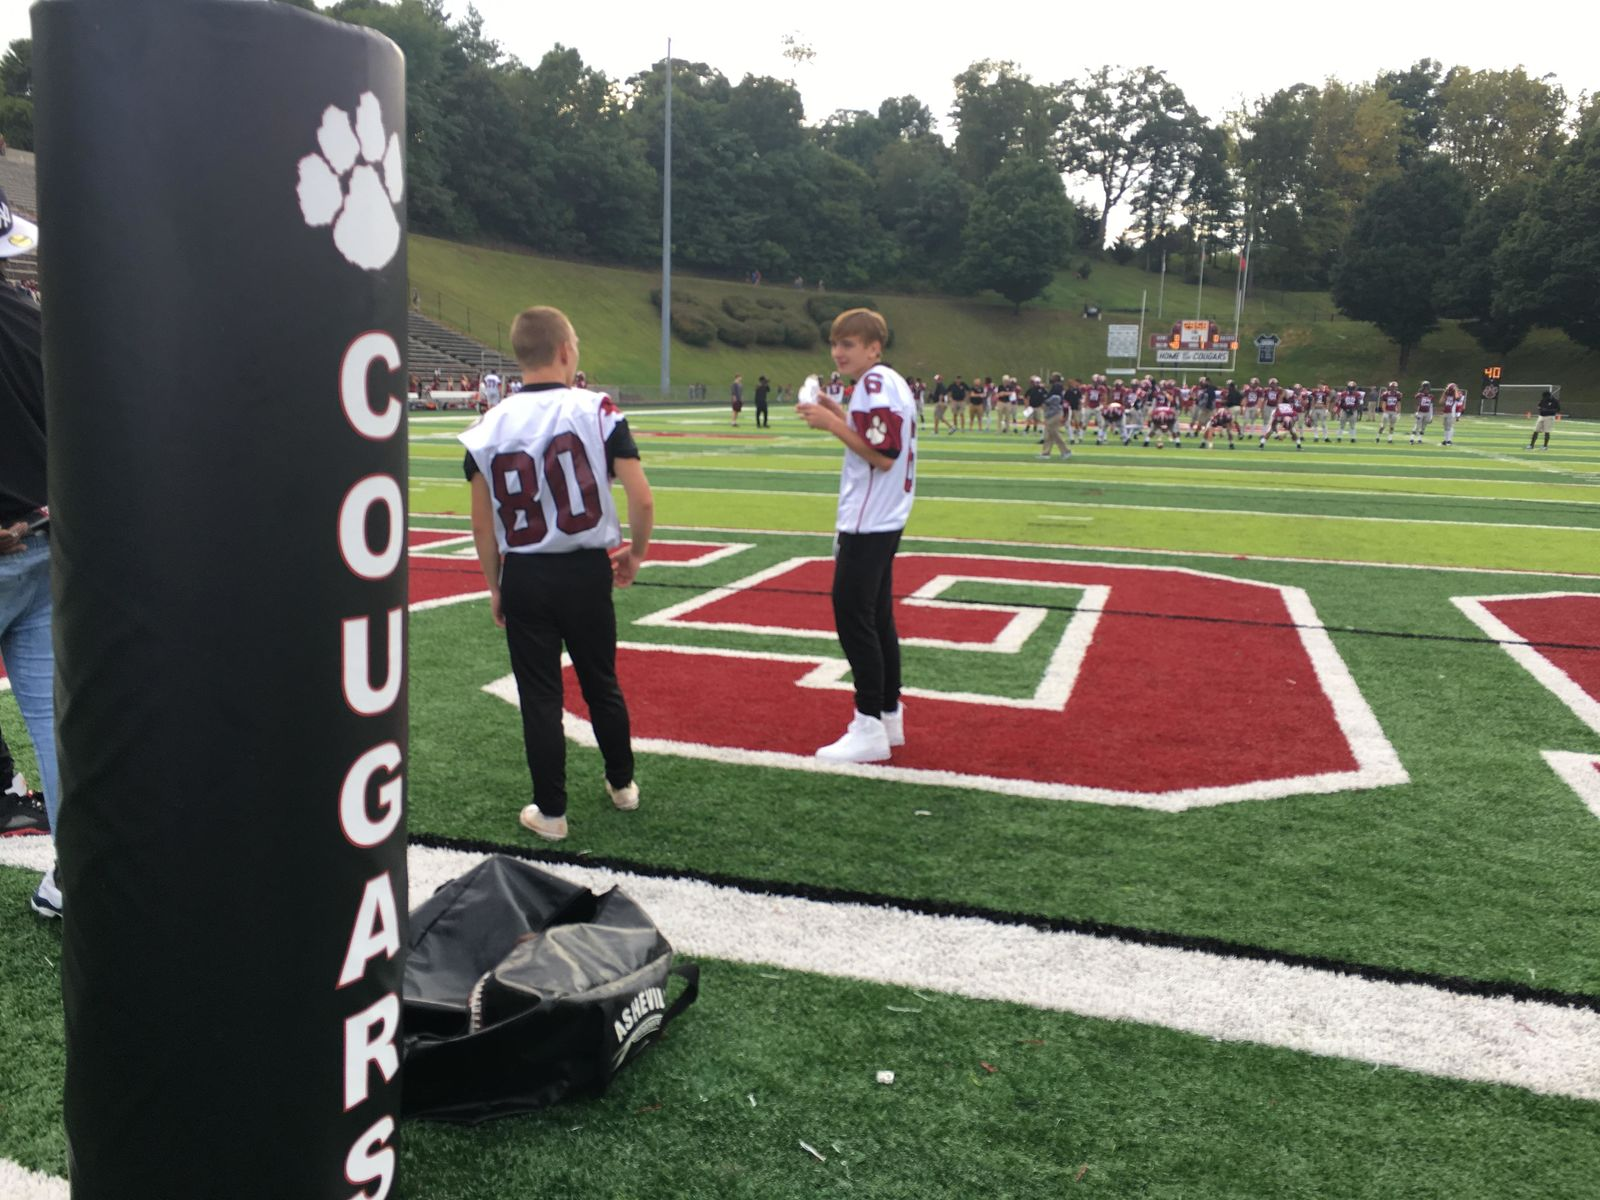 Franklin vs Asheville, 08-23-19 (Photo credit: WLOS Staff)